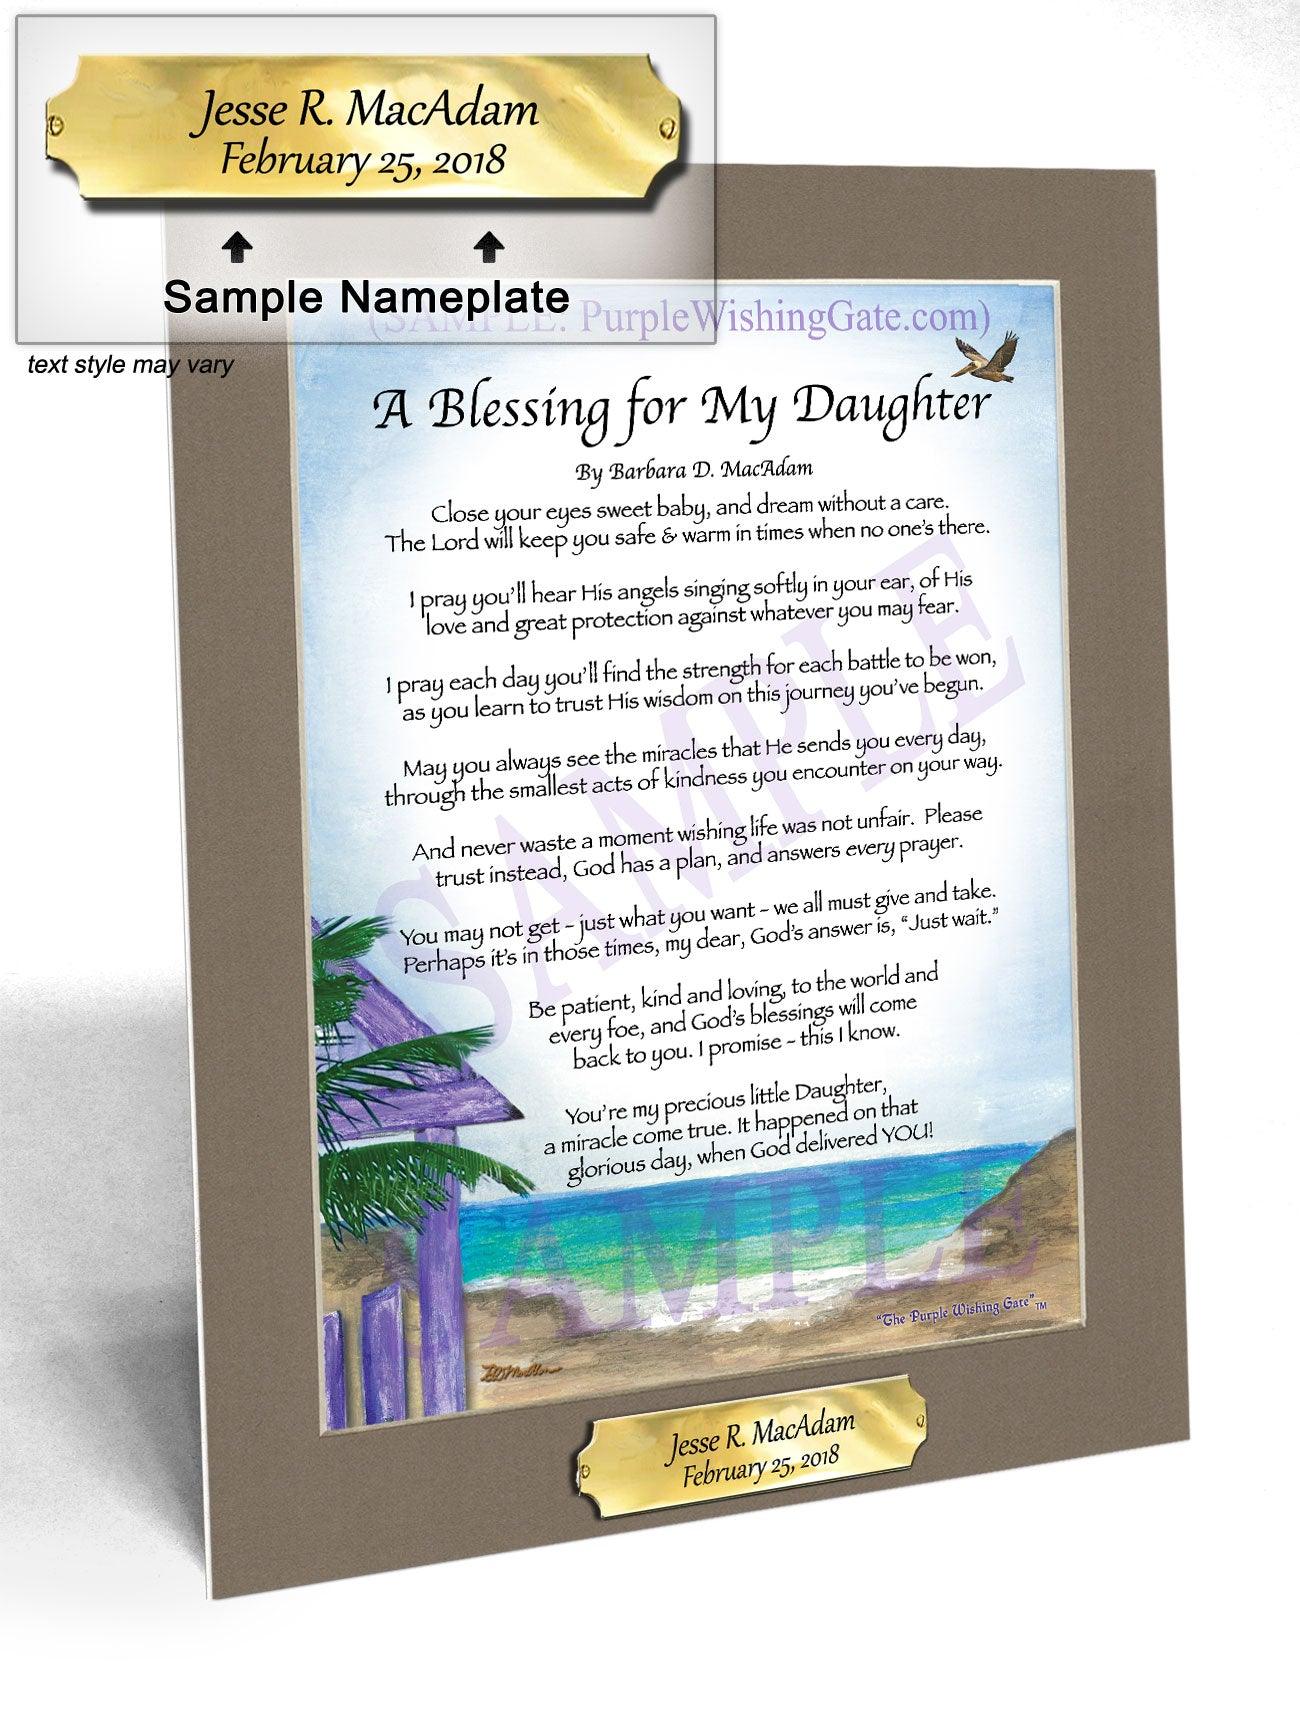 A Blessing for My Daughter (baby) - Baby Gift - PurpleWishingGate.com